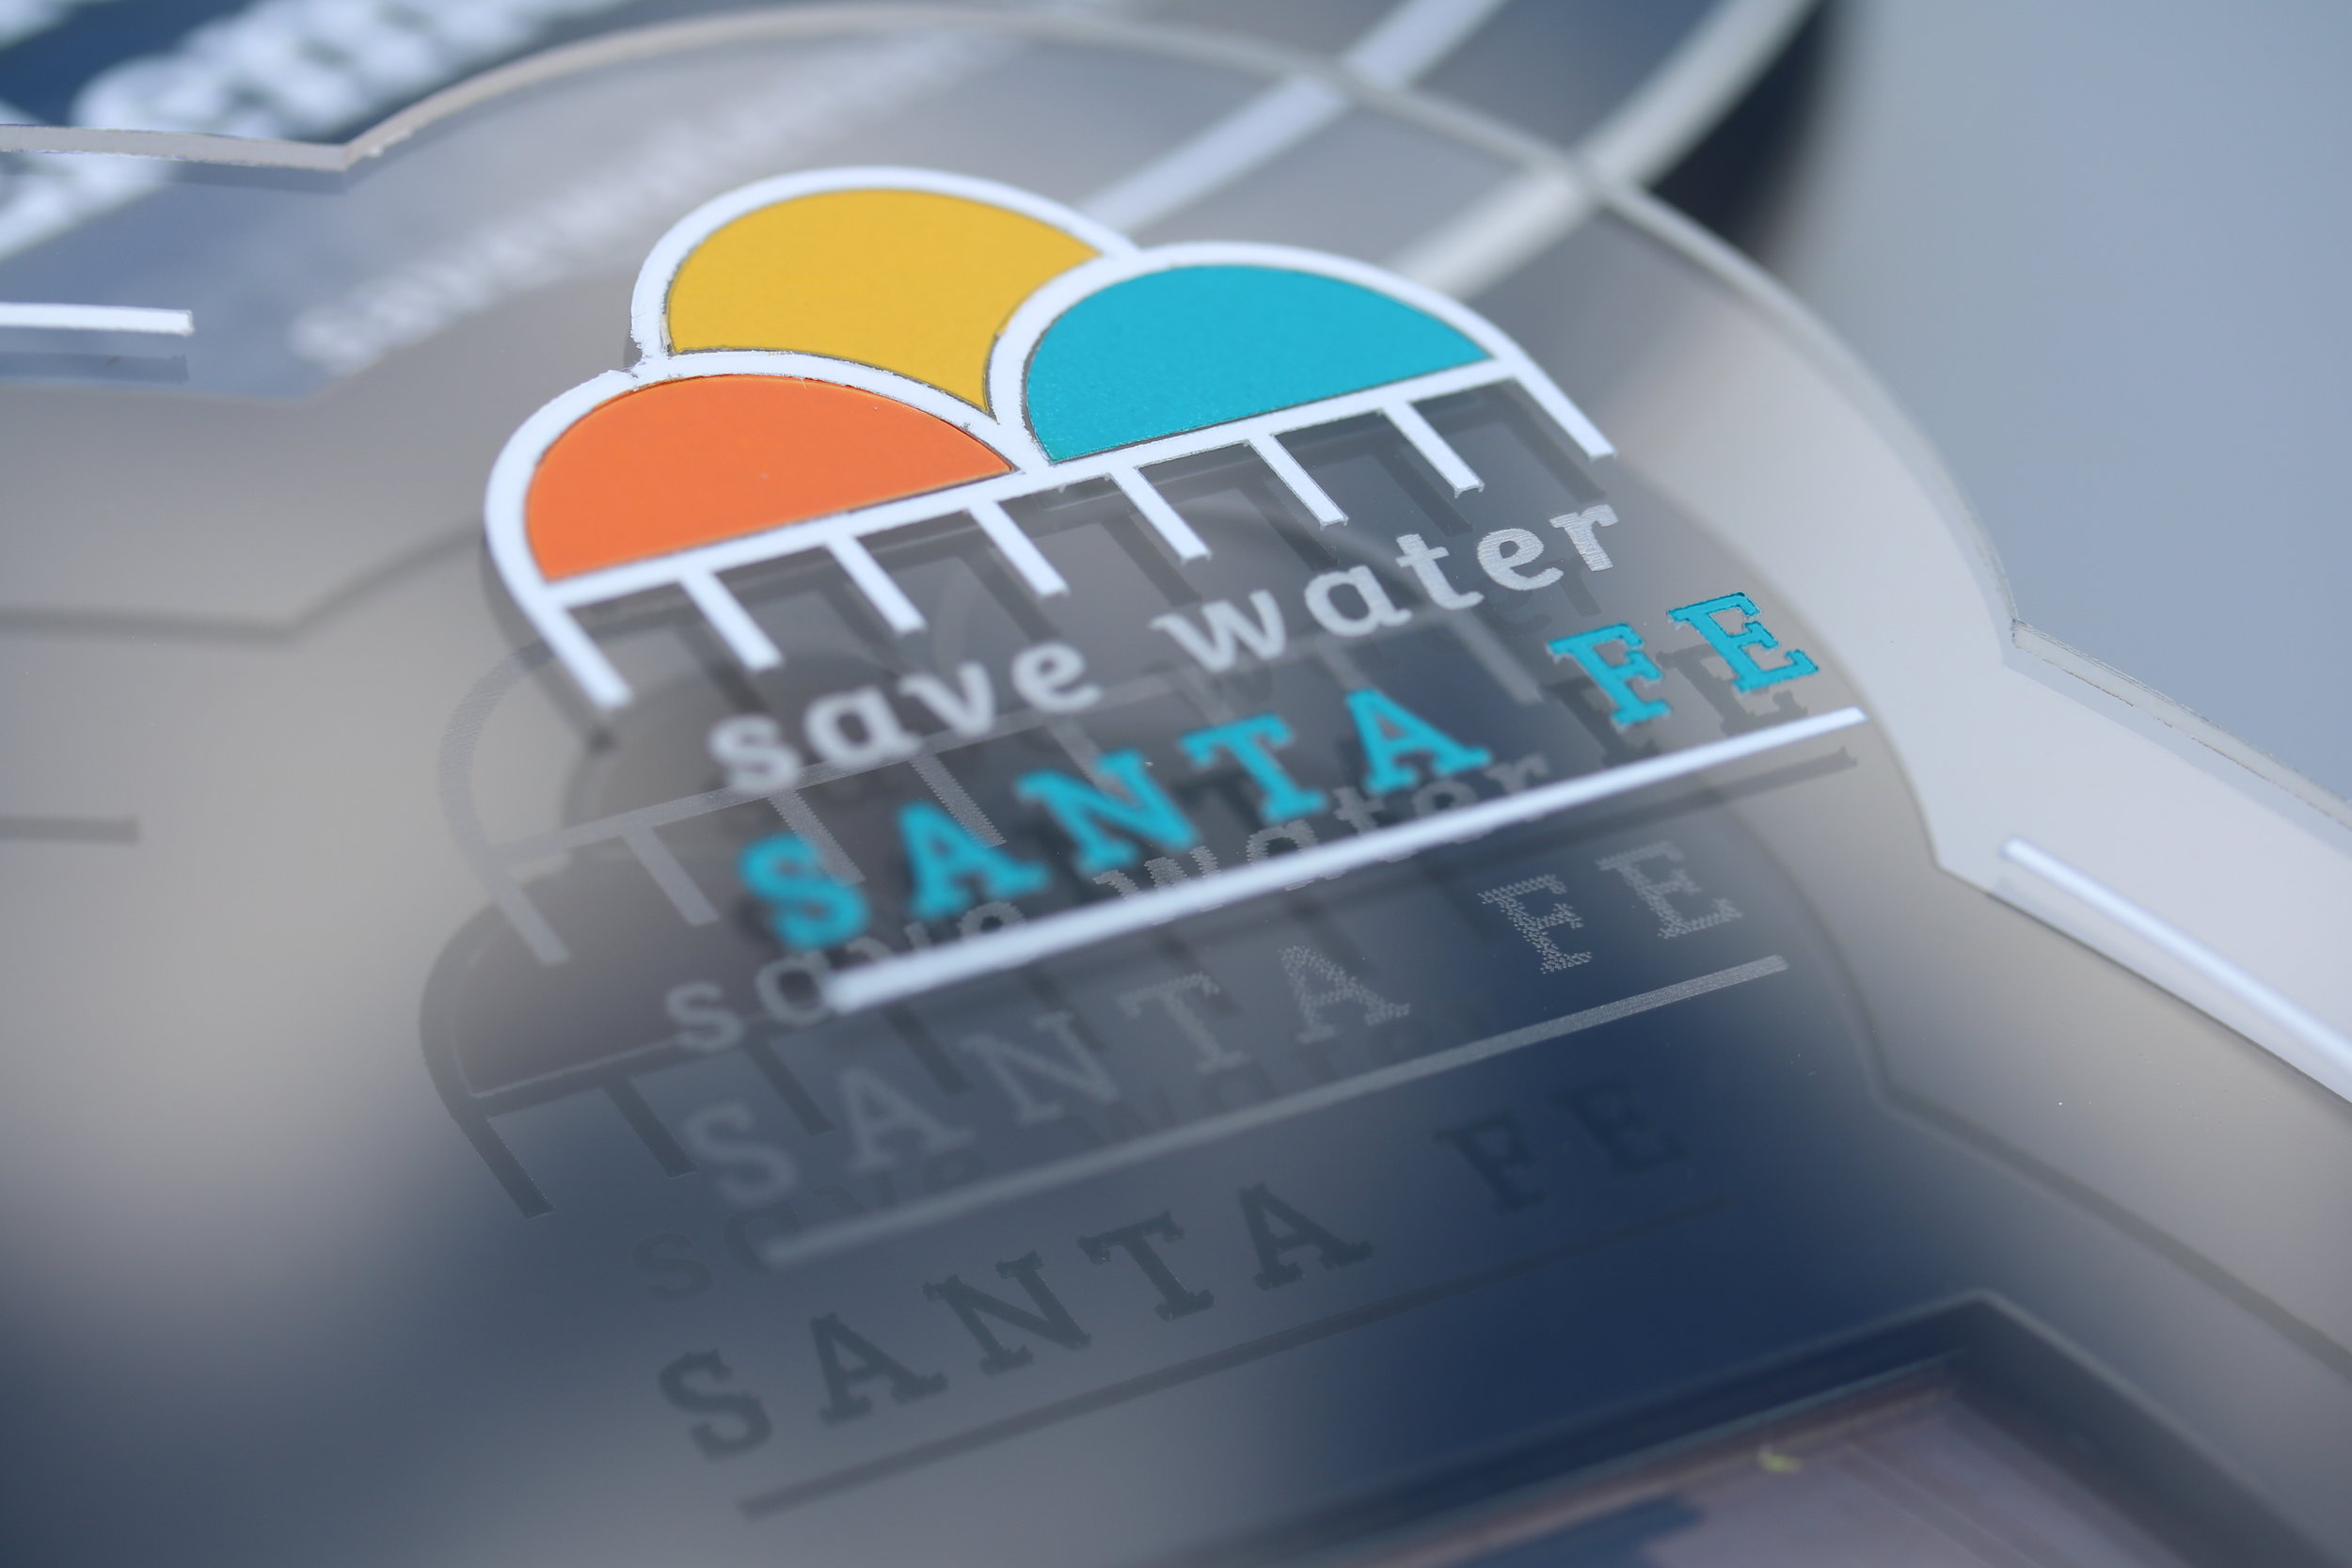 Save Water Santa Fe - Santa Fe Public School Recognition Plaque  Contact us for pricing information.